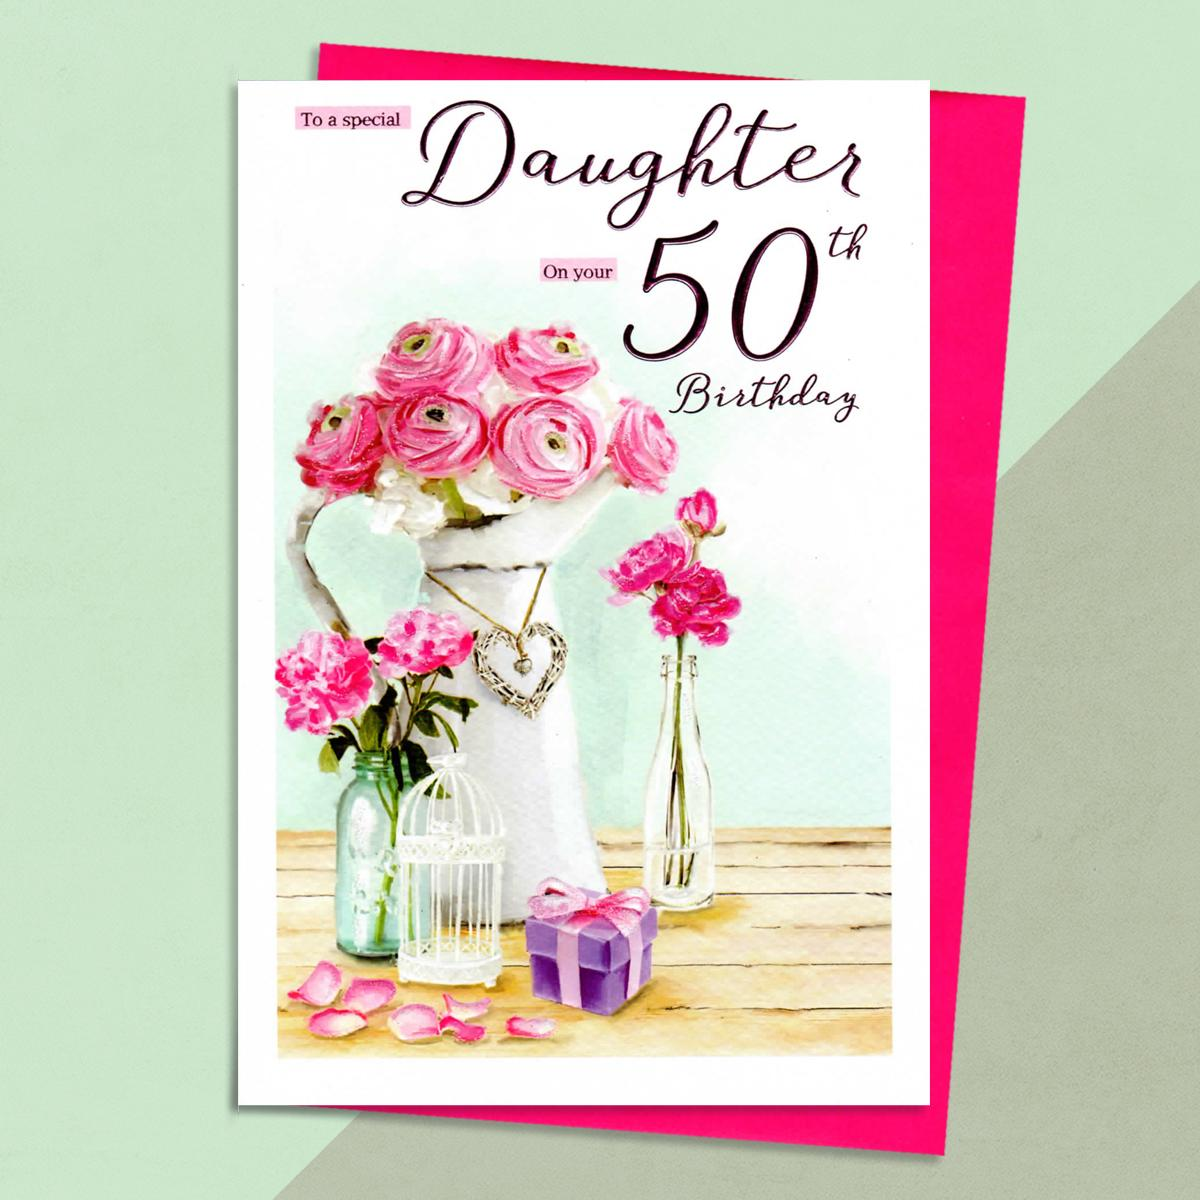 Daughter Age 50 Birthday Card Sitting On The Shelf